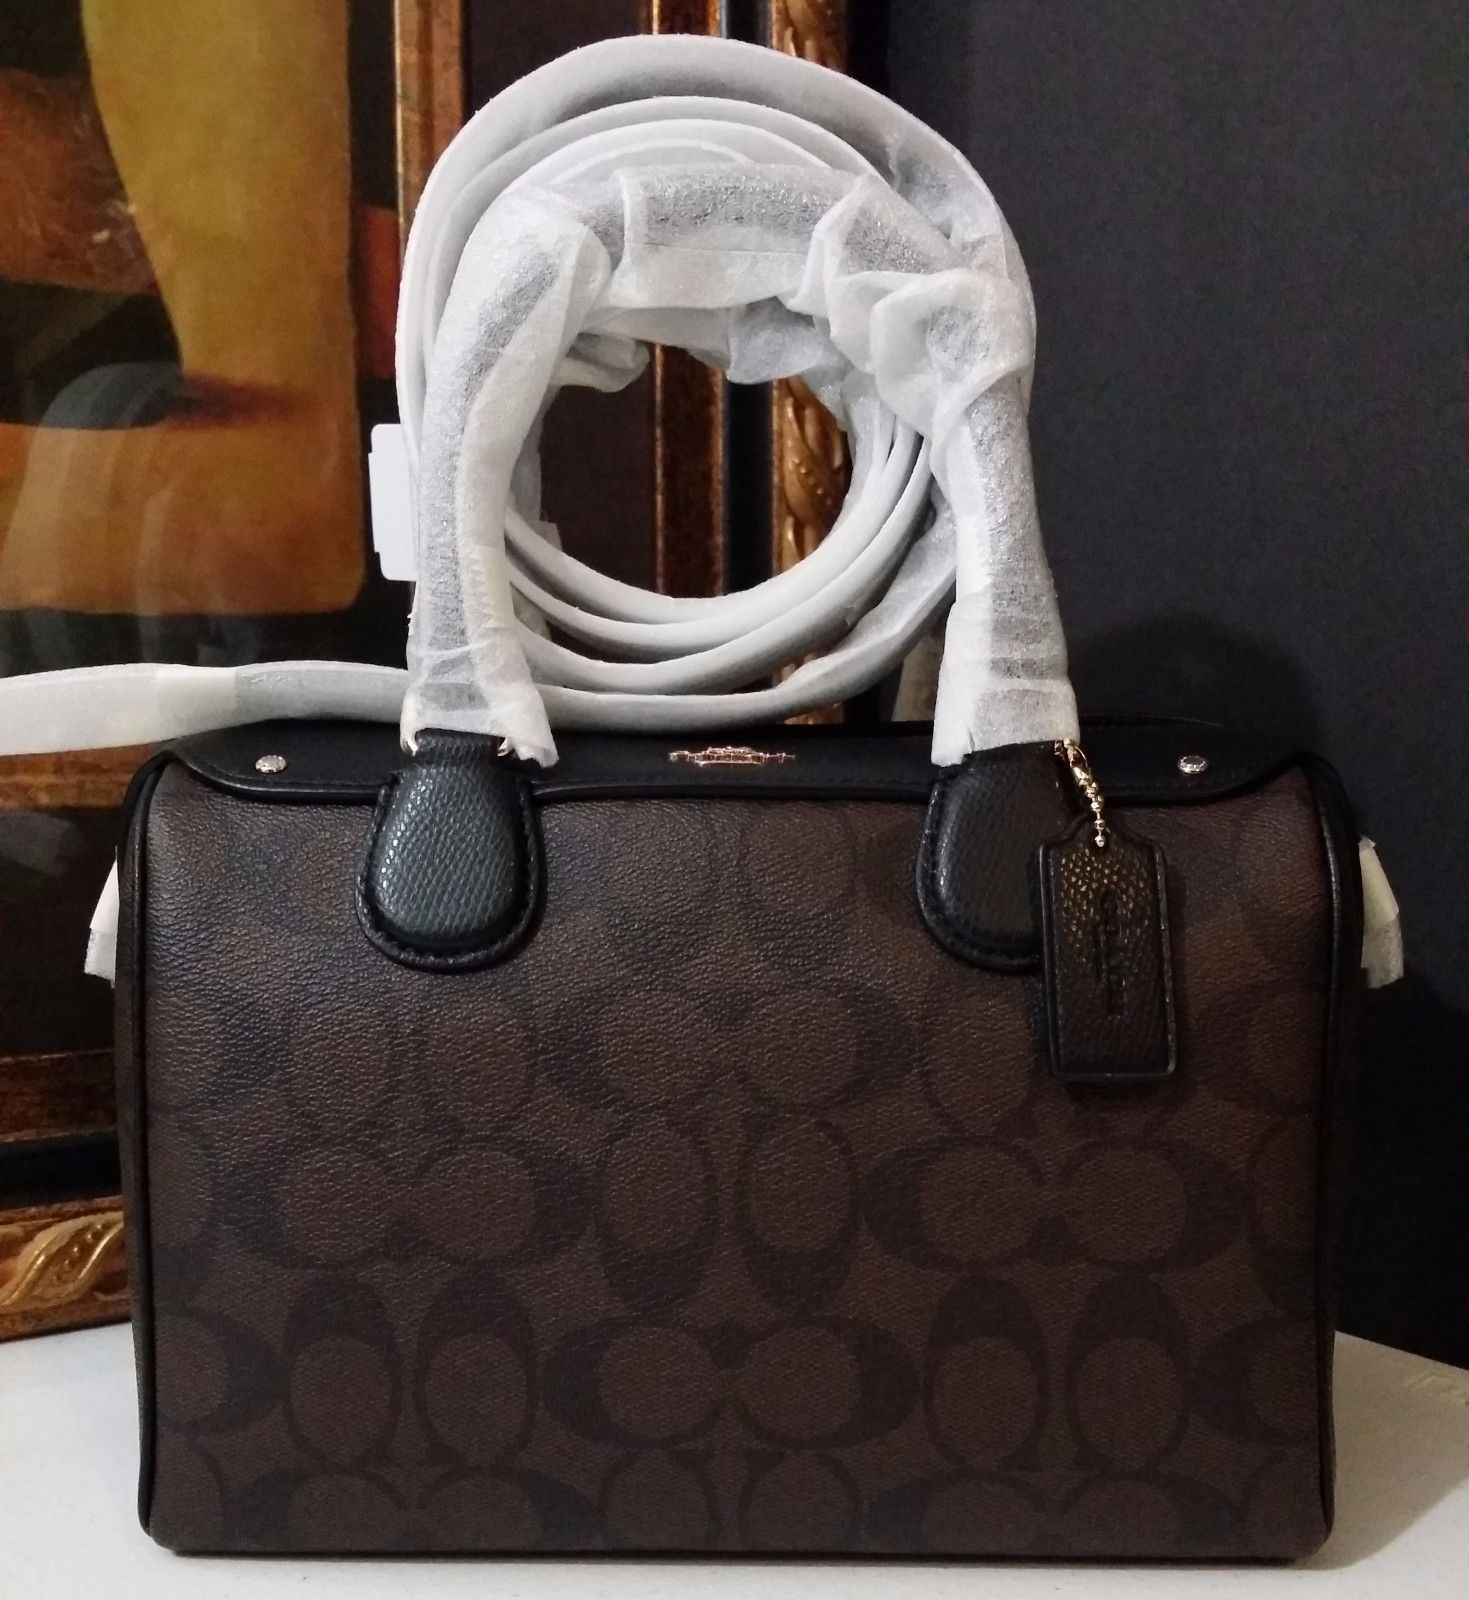 NWT COACH MINI BENNETT SATCHEL IN SIGNATURE F36702 IM/BROWN/BLACK $295